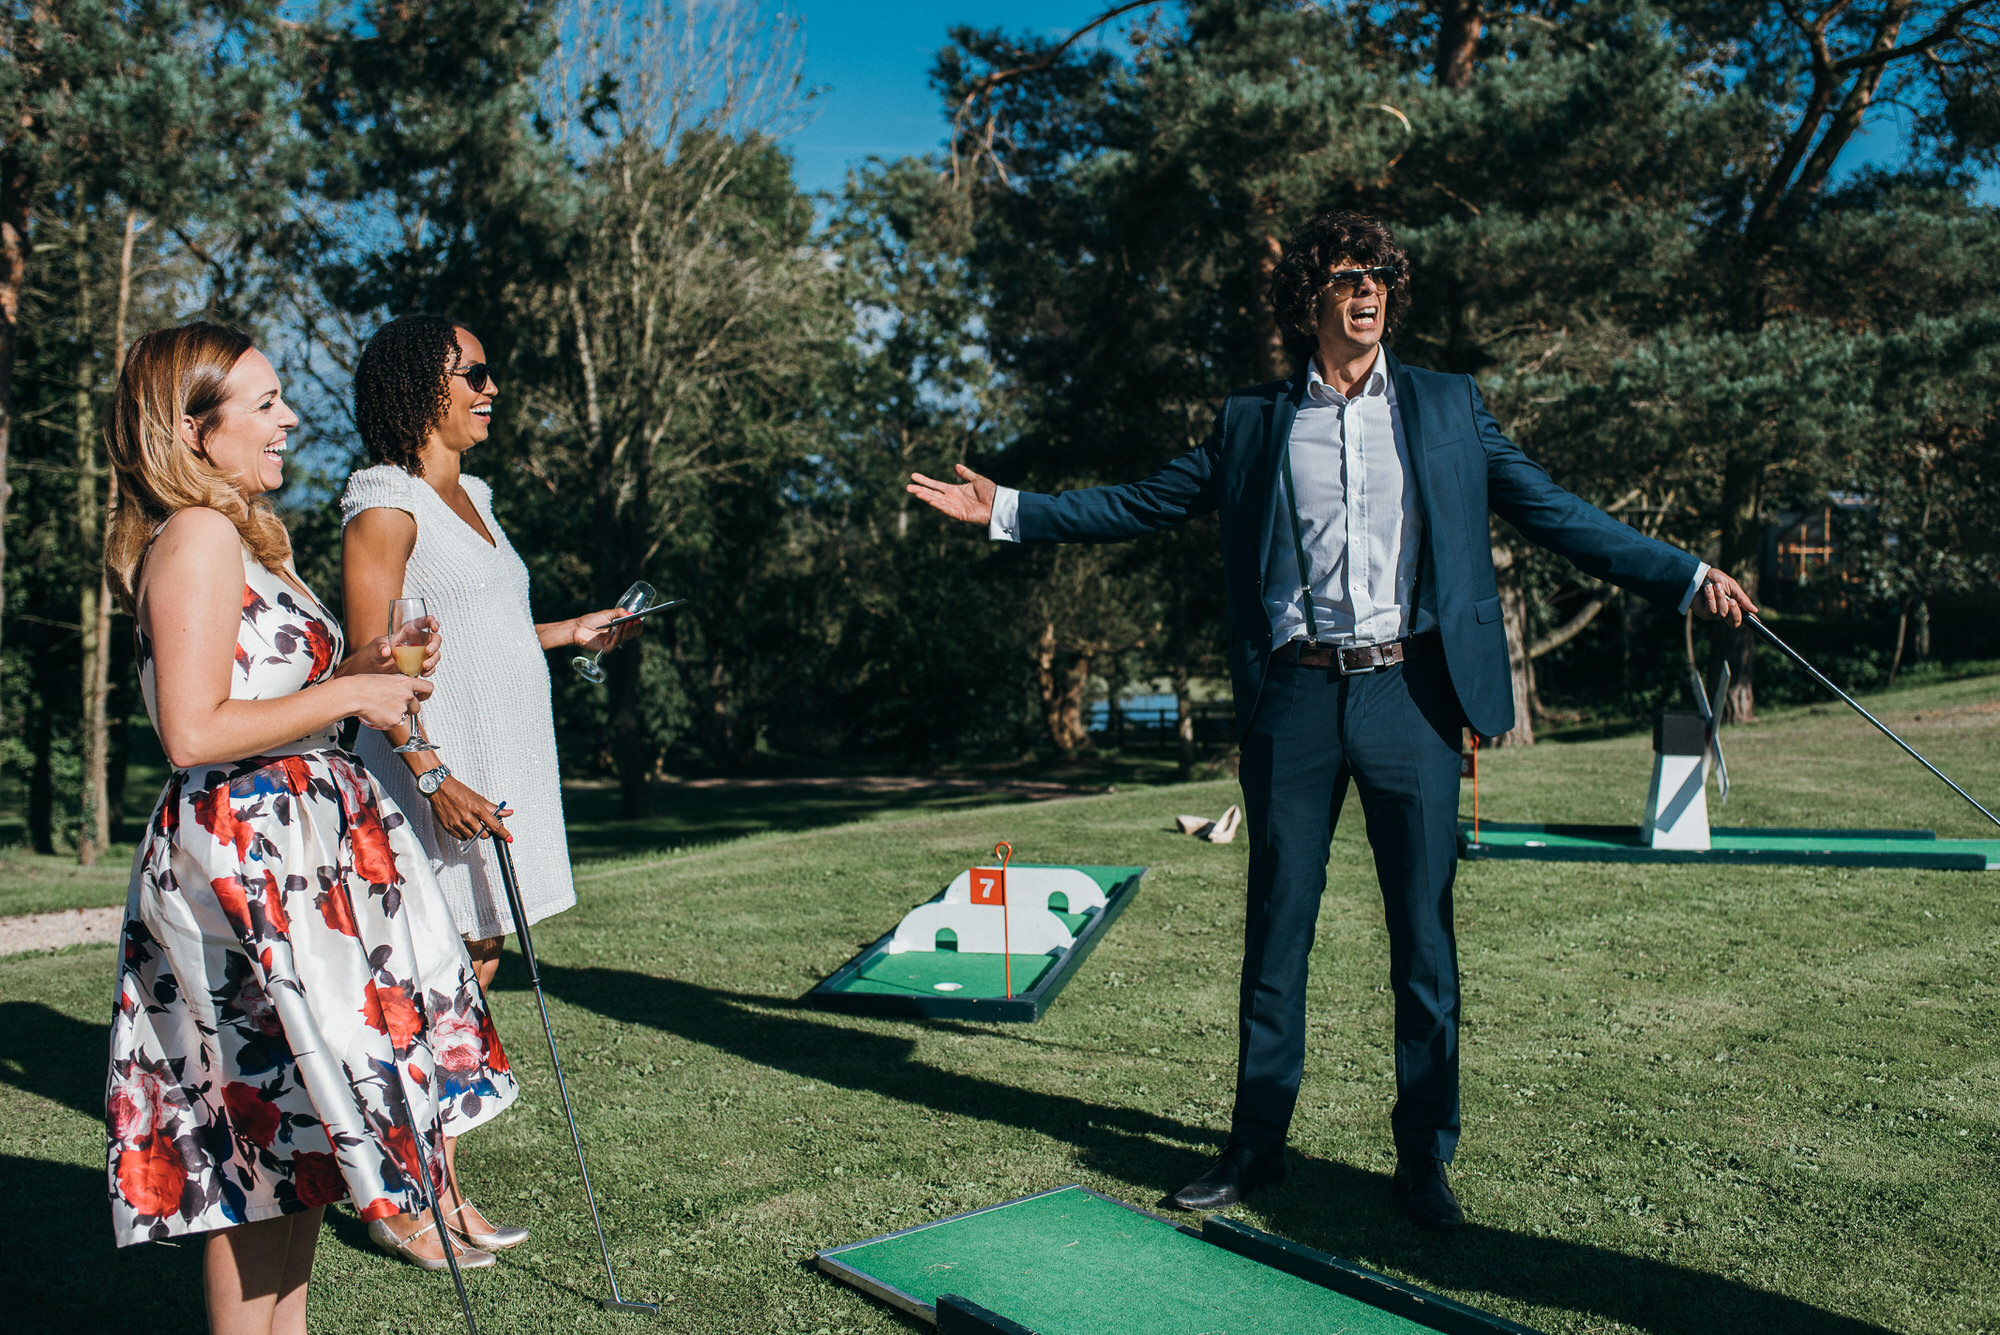 Crazy golf game at wedding